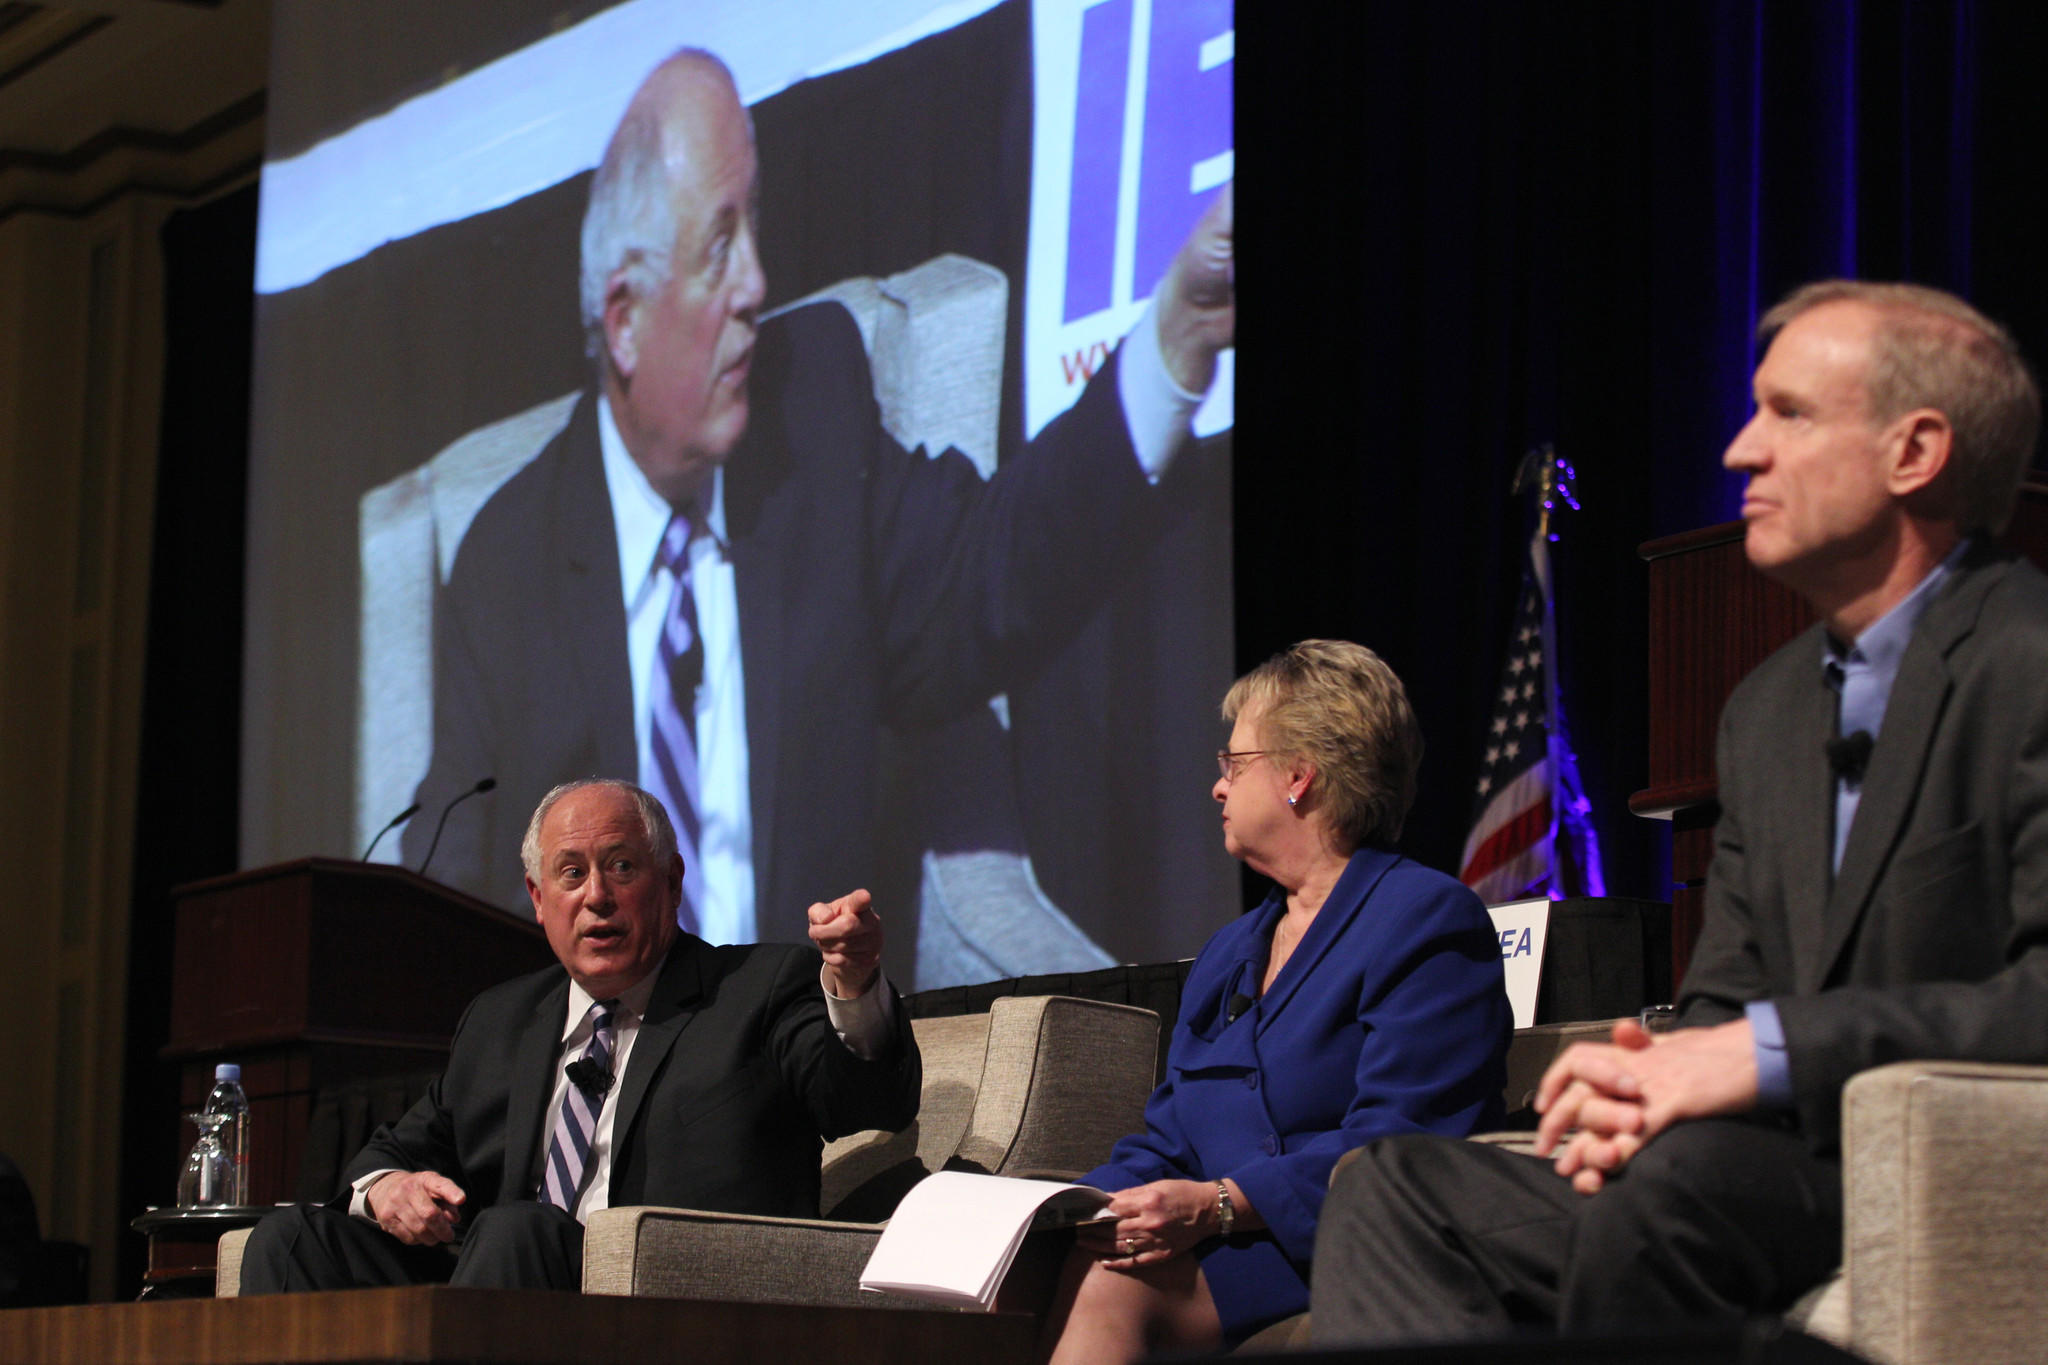 Illinois Gov. Pat Quinn, left, and businessman Bruce Rauner, right, his opponent in the November election for governor, make their first joint appearance at the Illinois Education Association's annual meeting in Chicago.